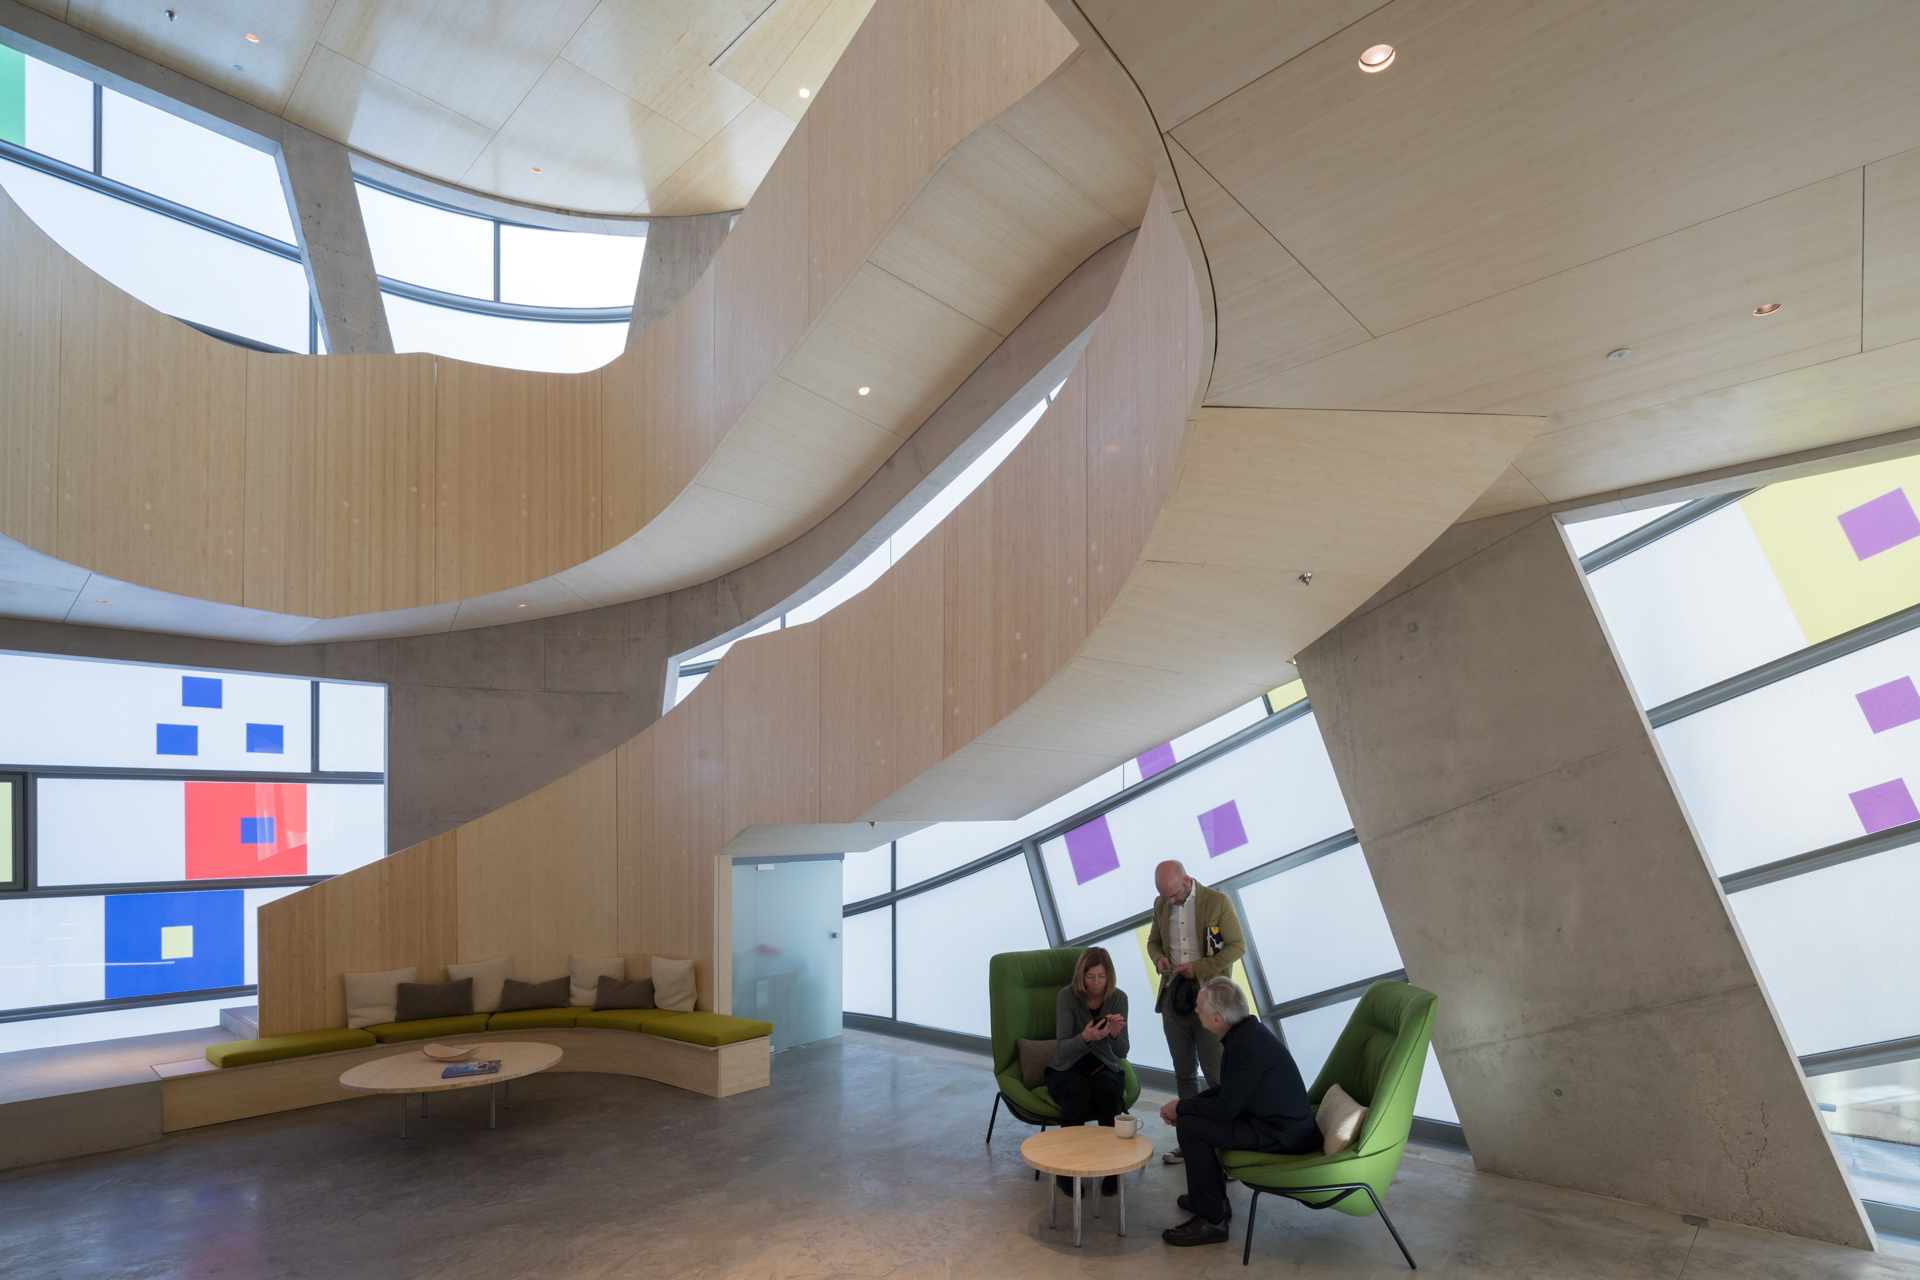 Steven Holl + jmarchitects: Maggie's Centre Barts Londra